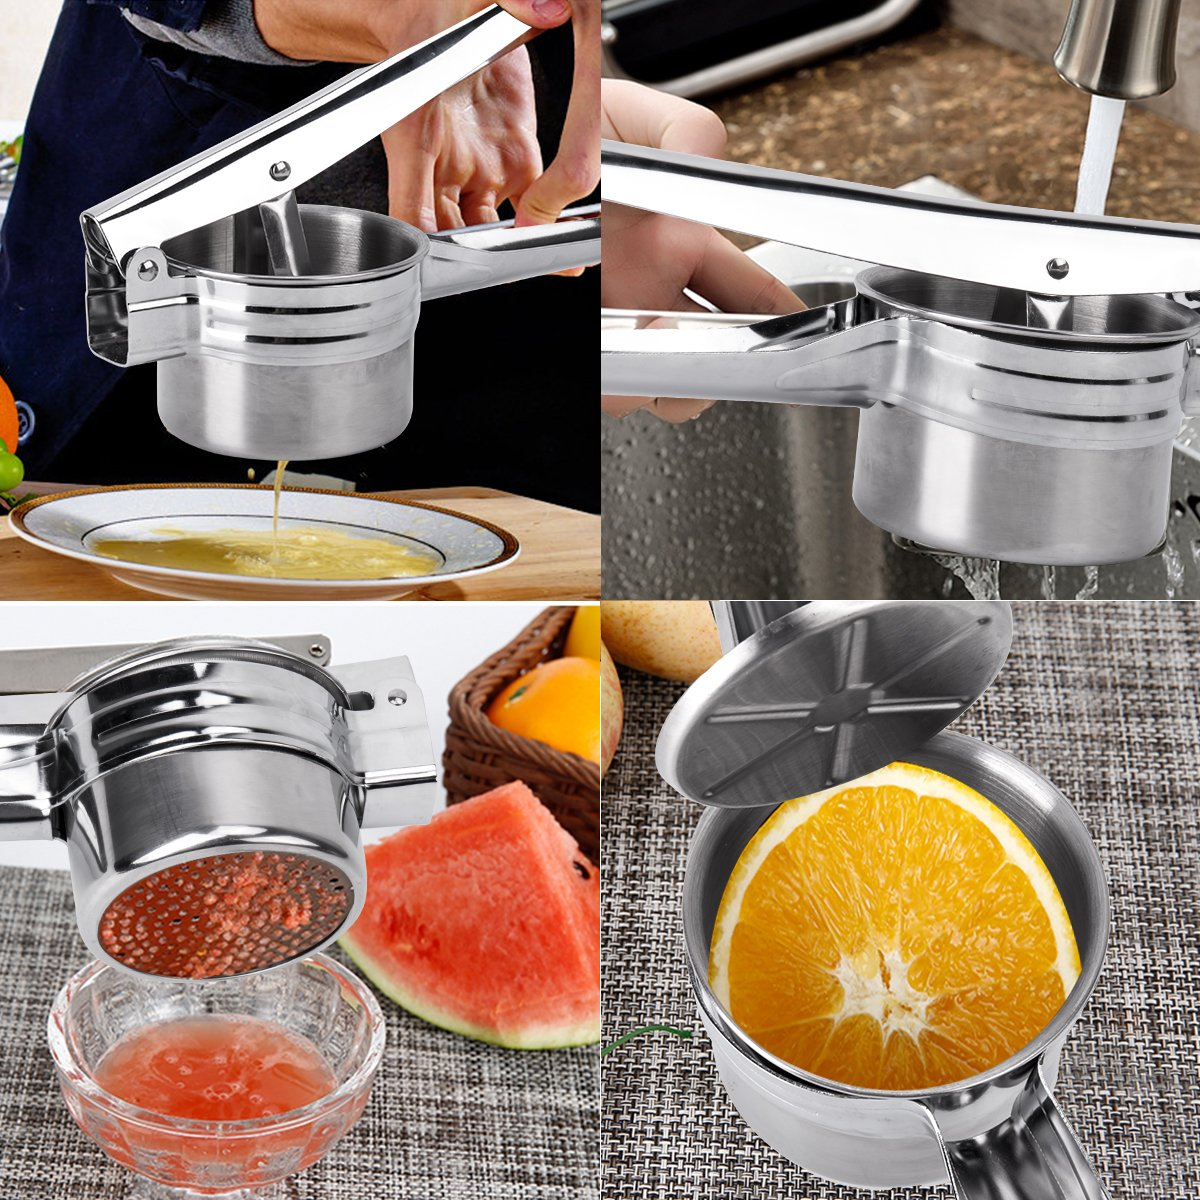 BeautyKitchen Stainless Steel Potato Ricer with 3 Interchangeable Disks by BeautyKitchen (Image #7)